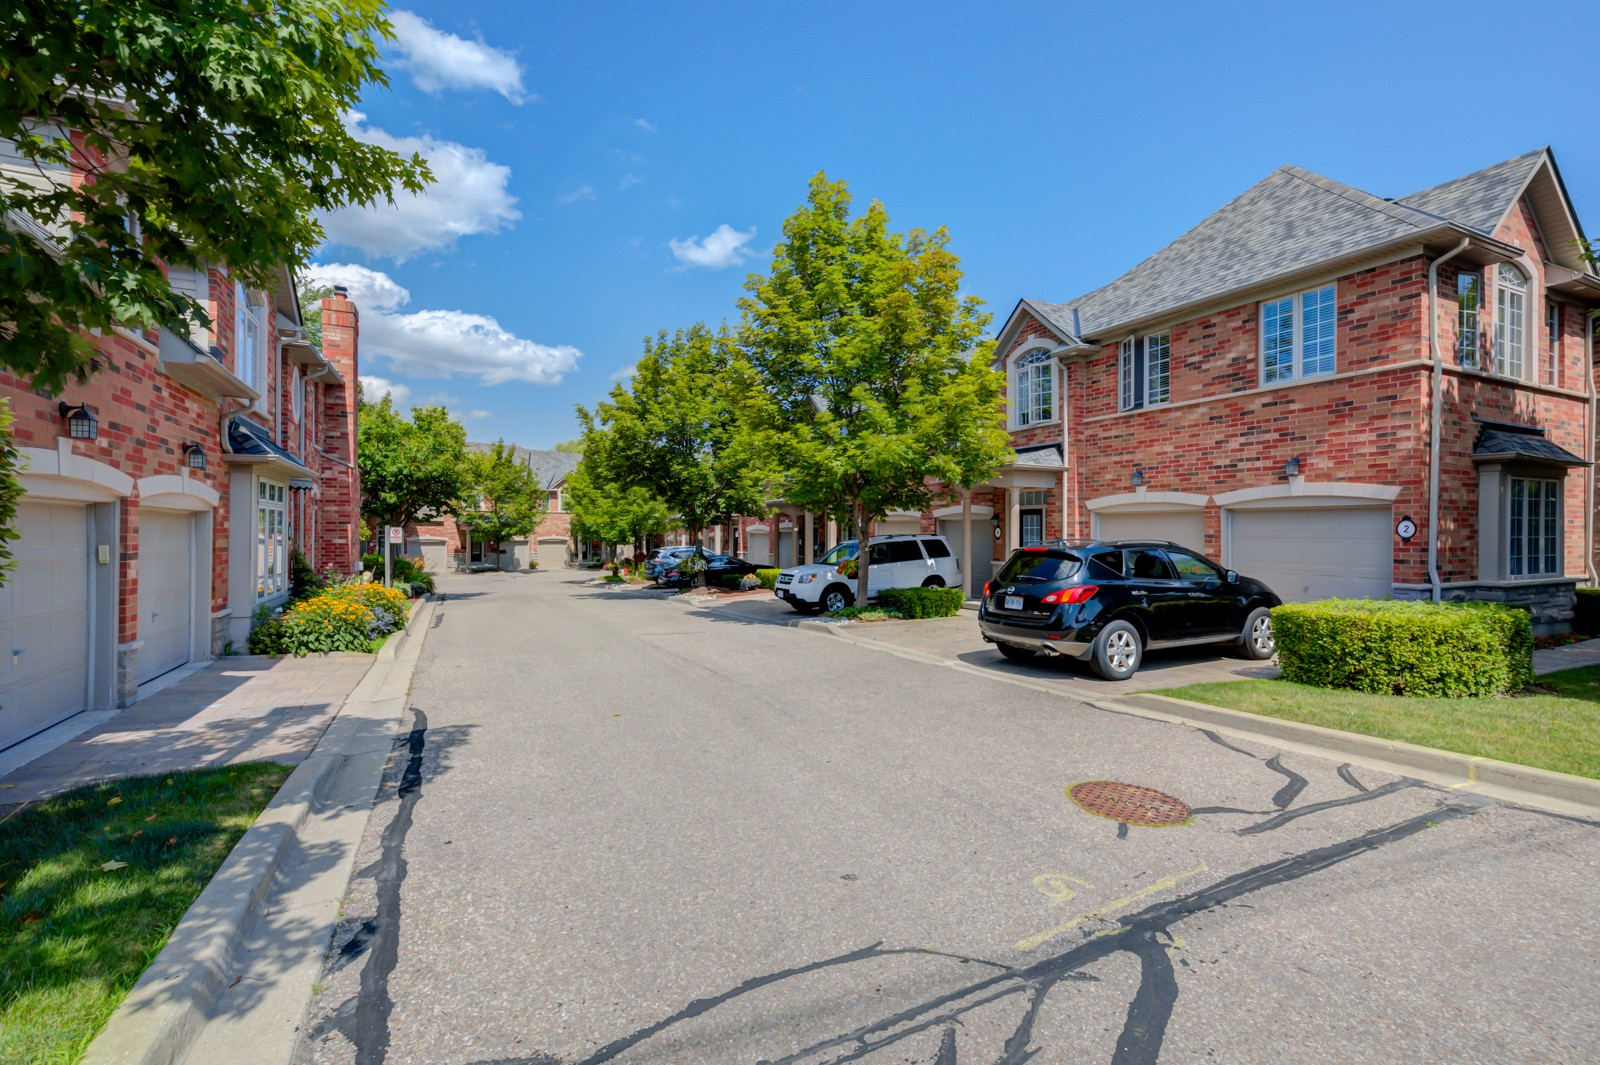 2355 Fifth Line West Townhouses at 2355 Fifth Line W, Mississauga 1